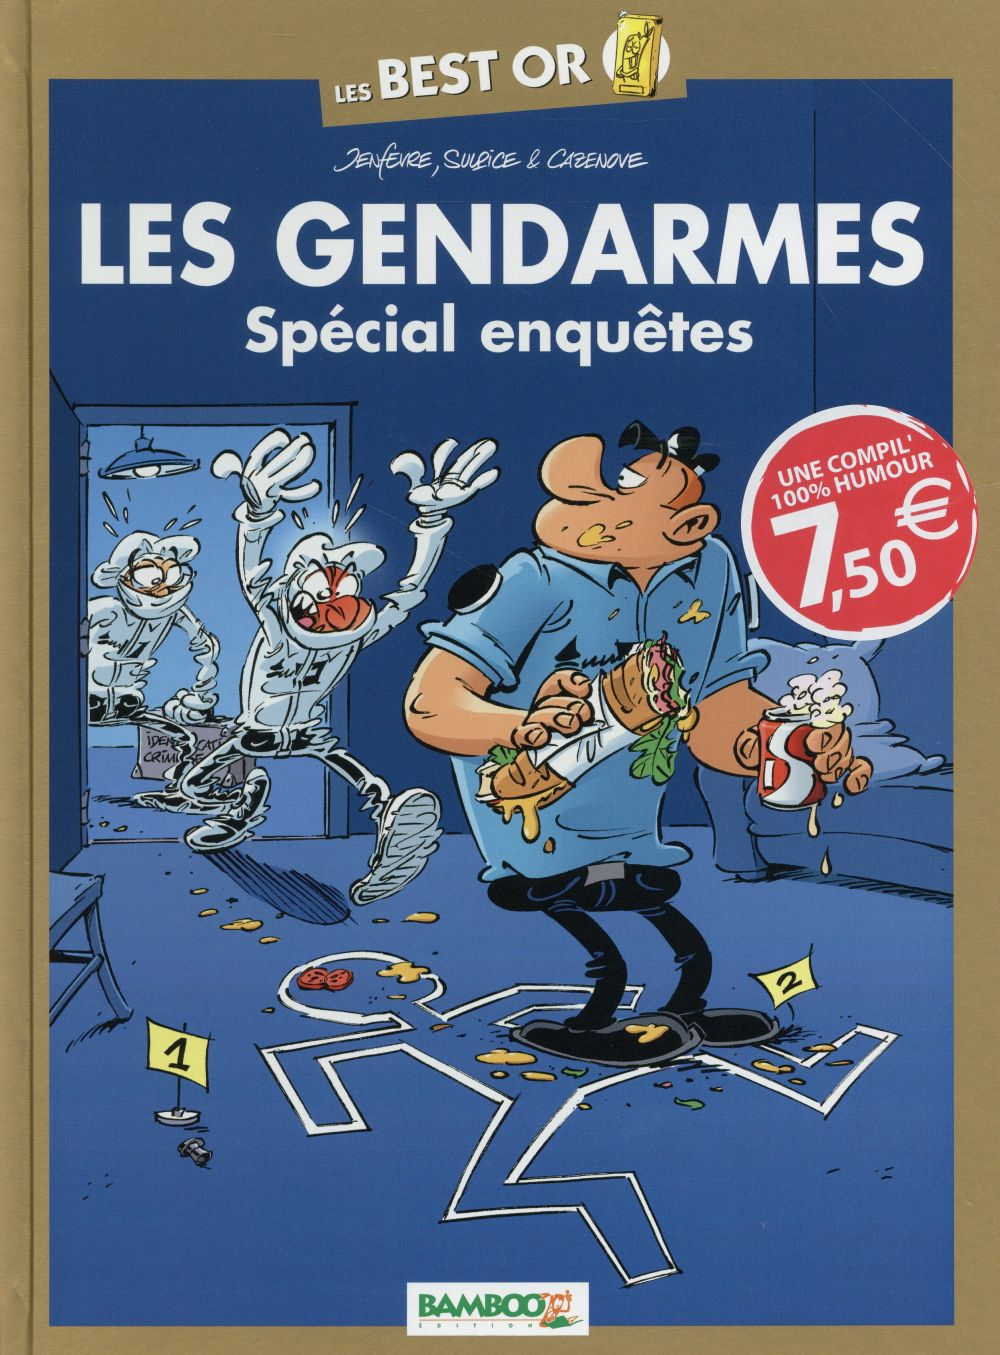 LES GENDARMES   BEST OR   SPECIAL ENQUETES